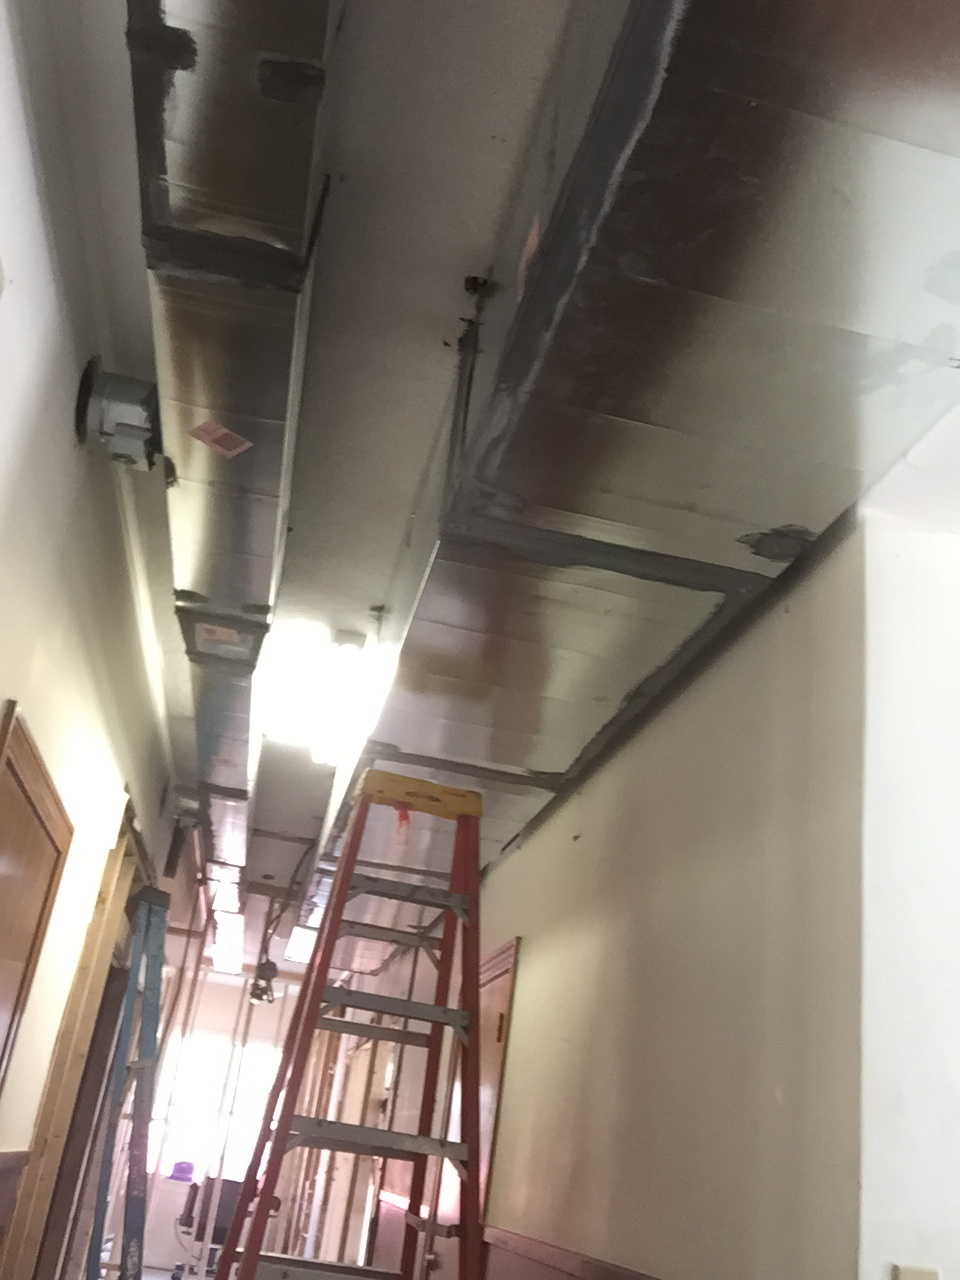 More new duct work to support our new, state-of-the-art HVAC system.